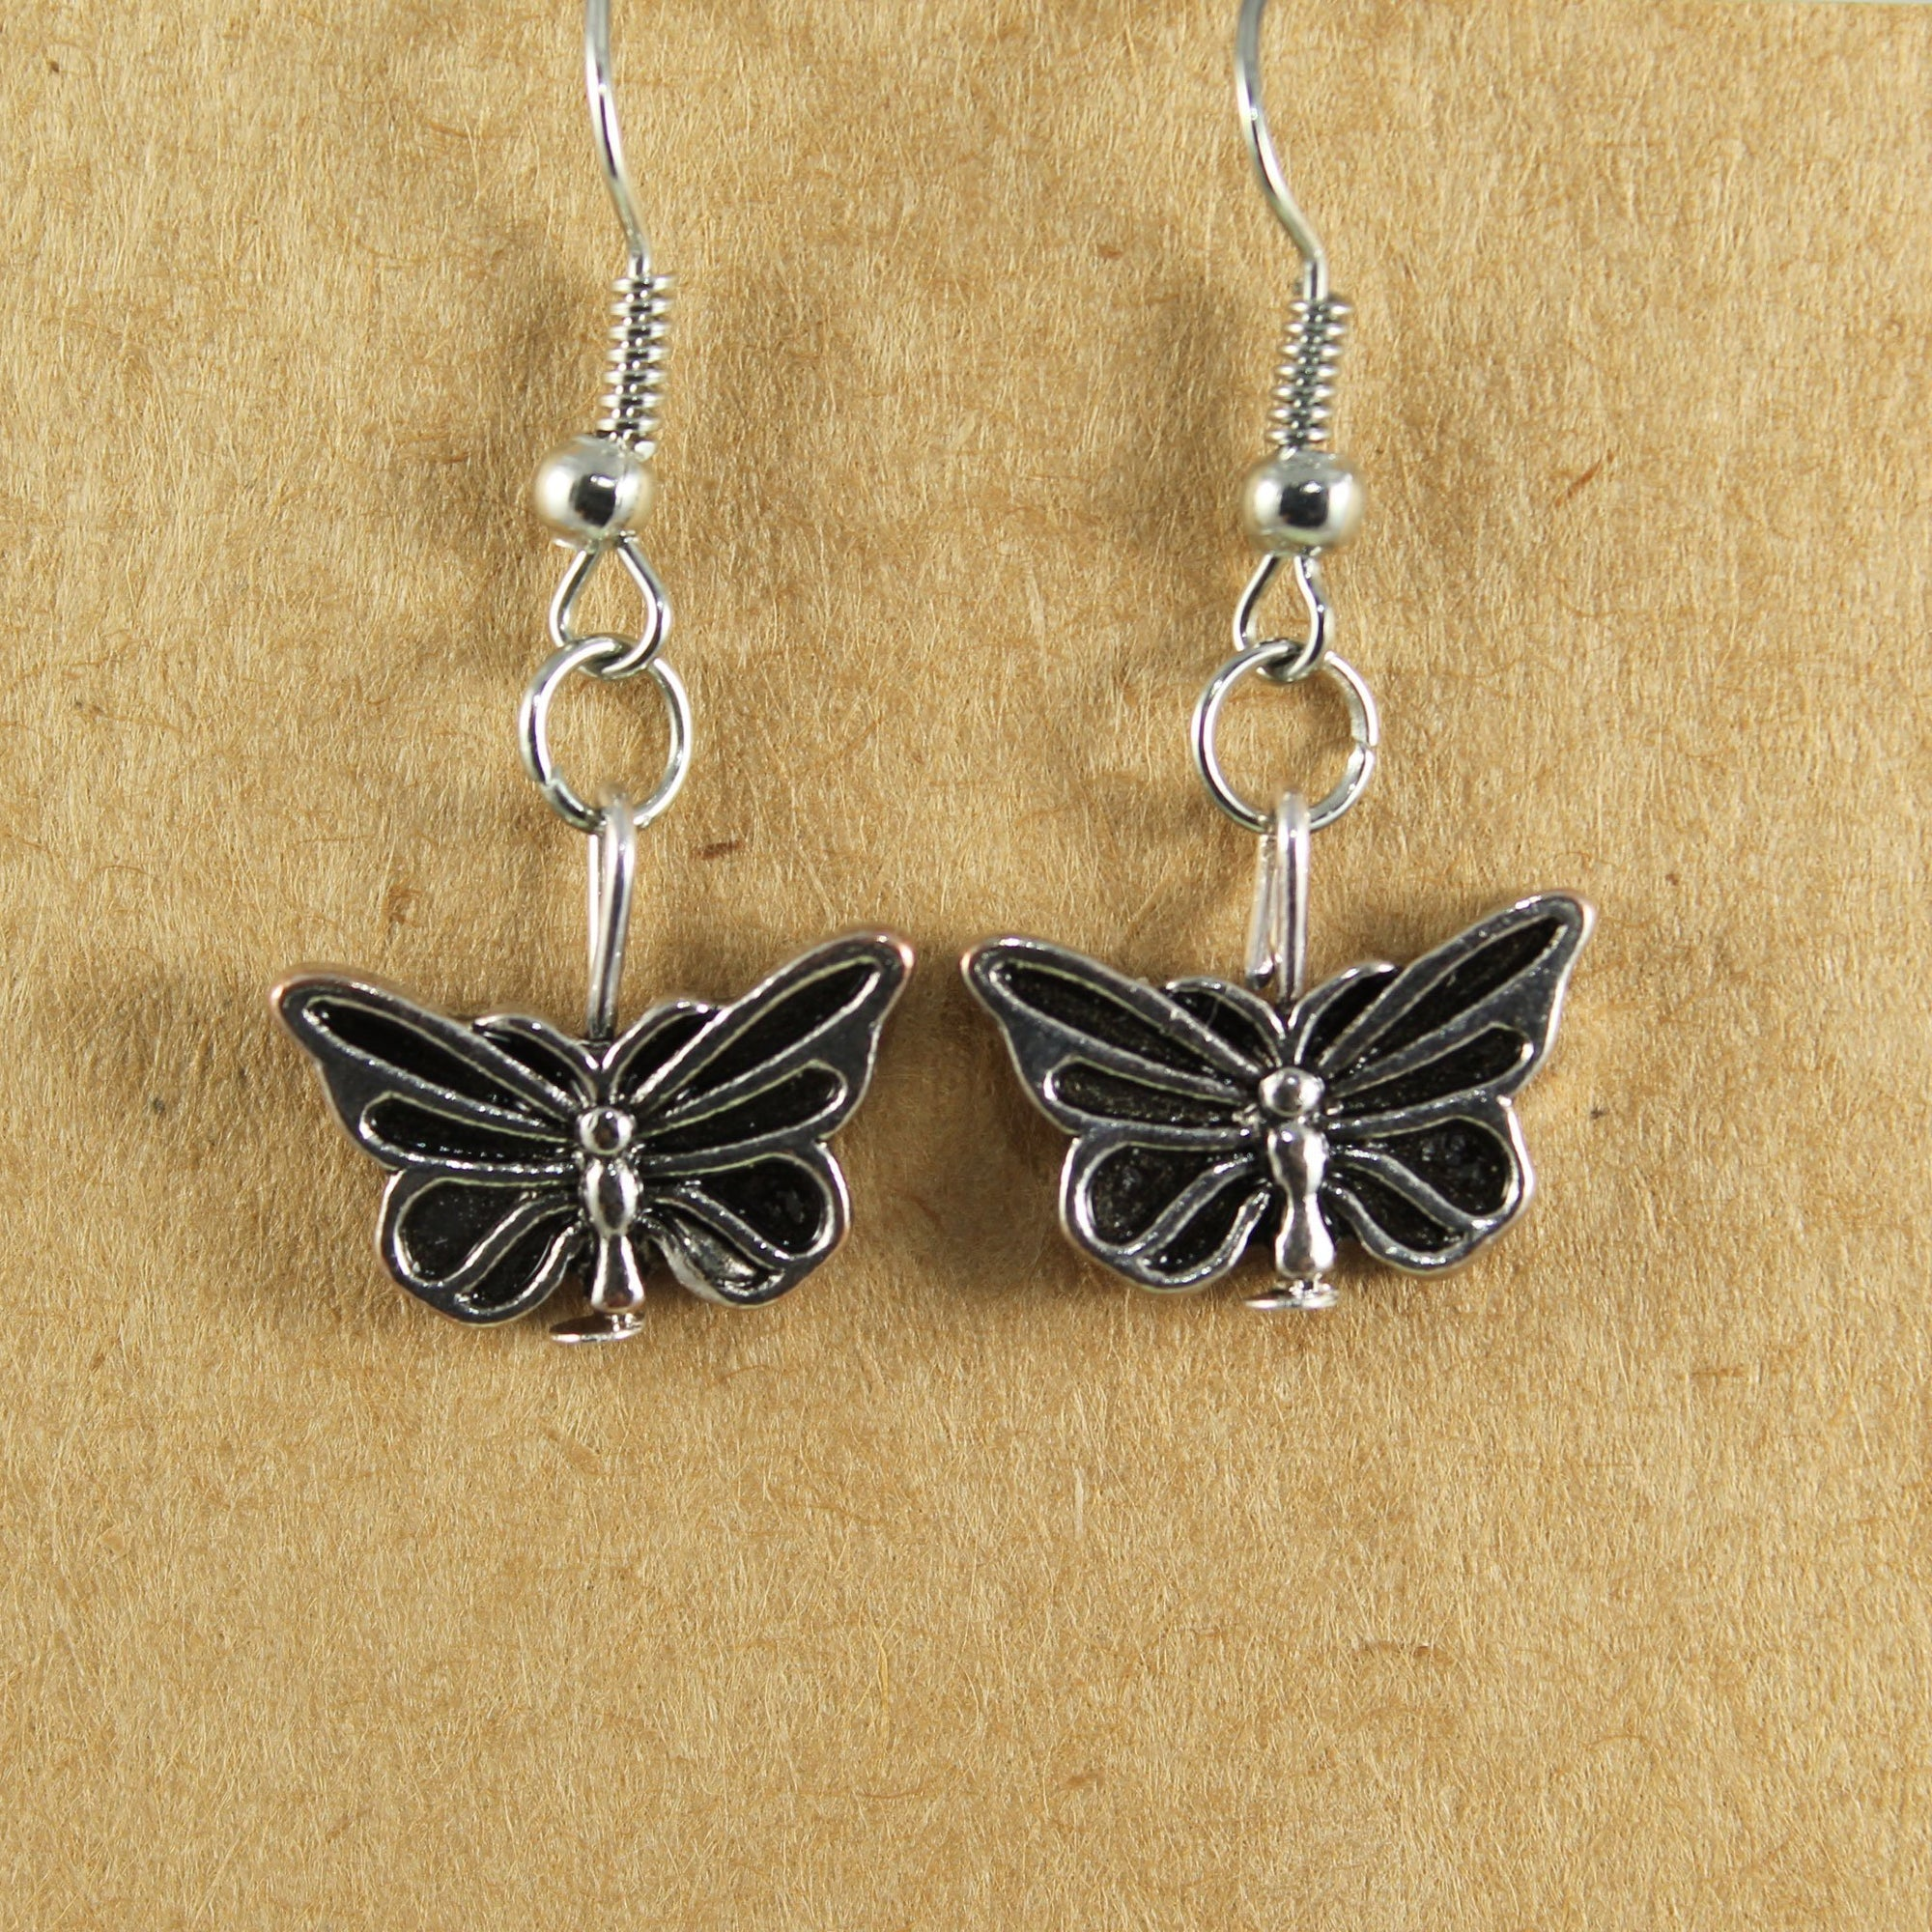 Butterfly earrings | Earrings - The Naughty Shrew